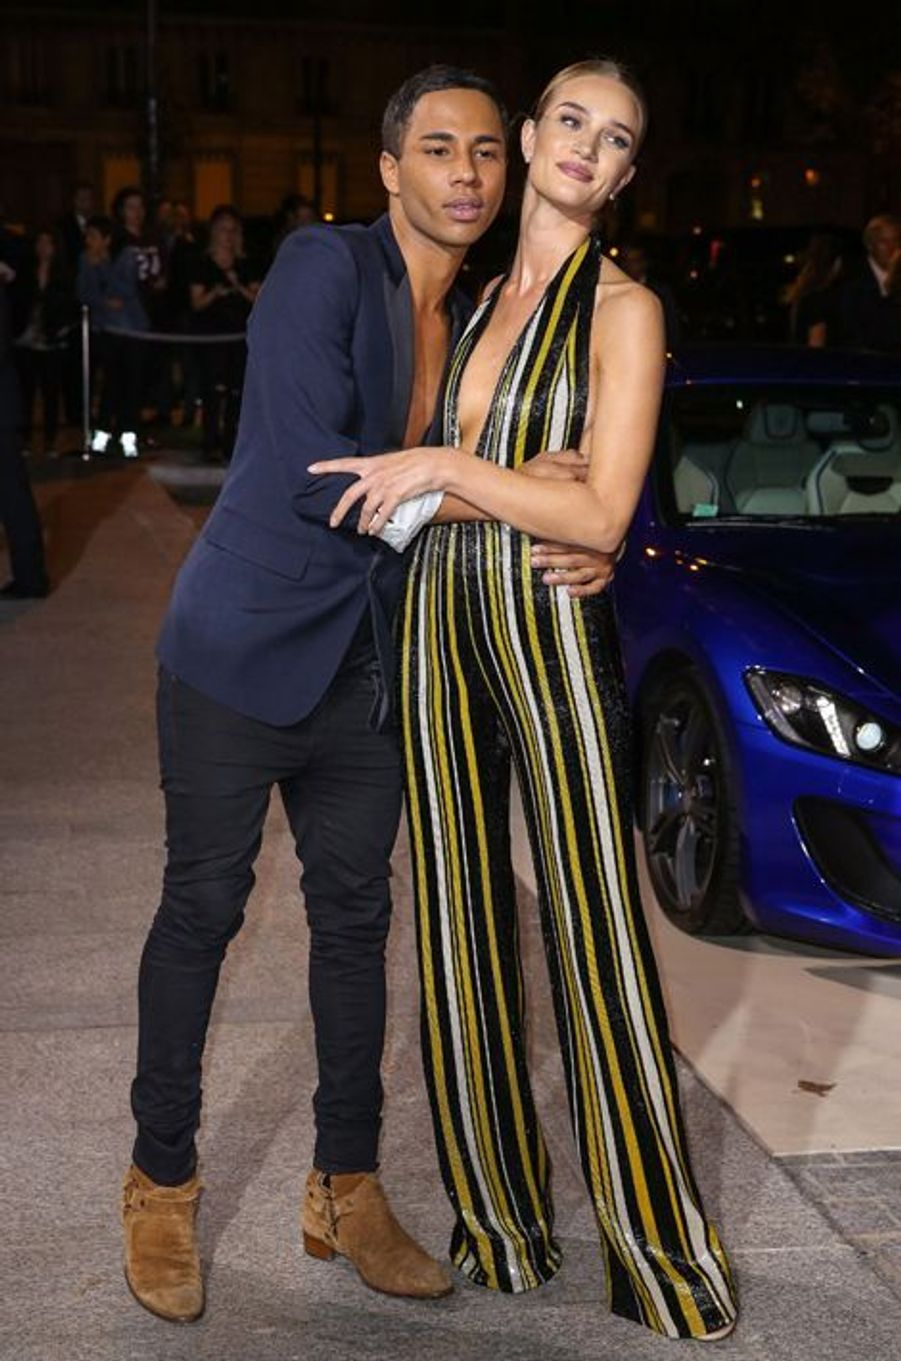 Olivier Rousteing et Rosie Huntington-Whiteley à la soirée CR Fashion Book organisée à Paris le mardi 30 septembre 2014